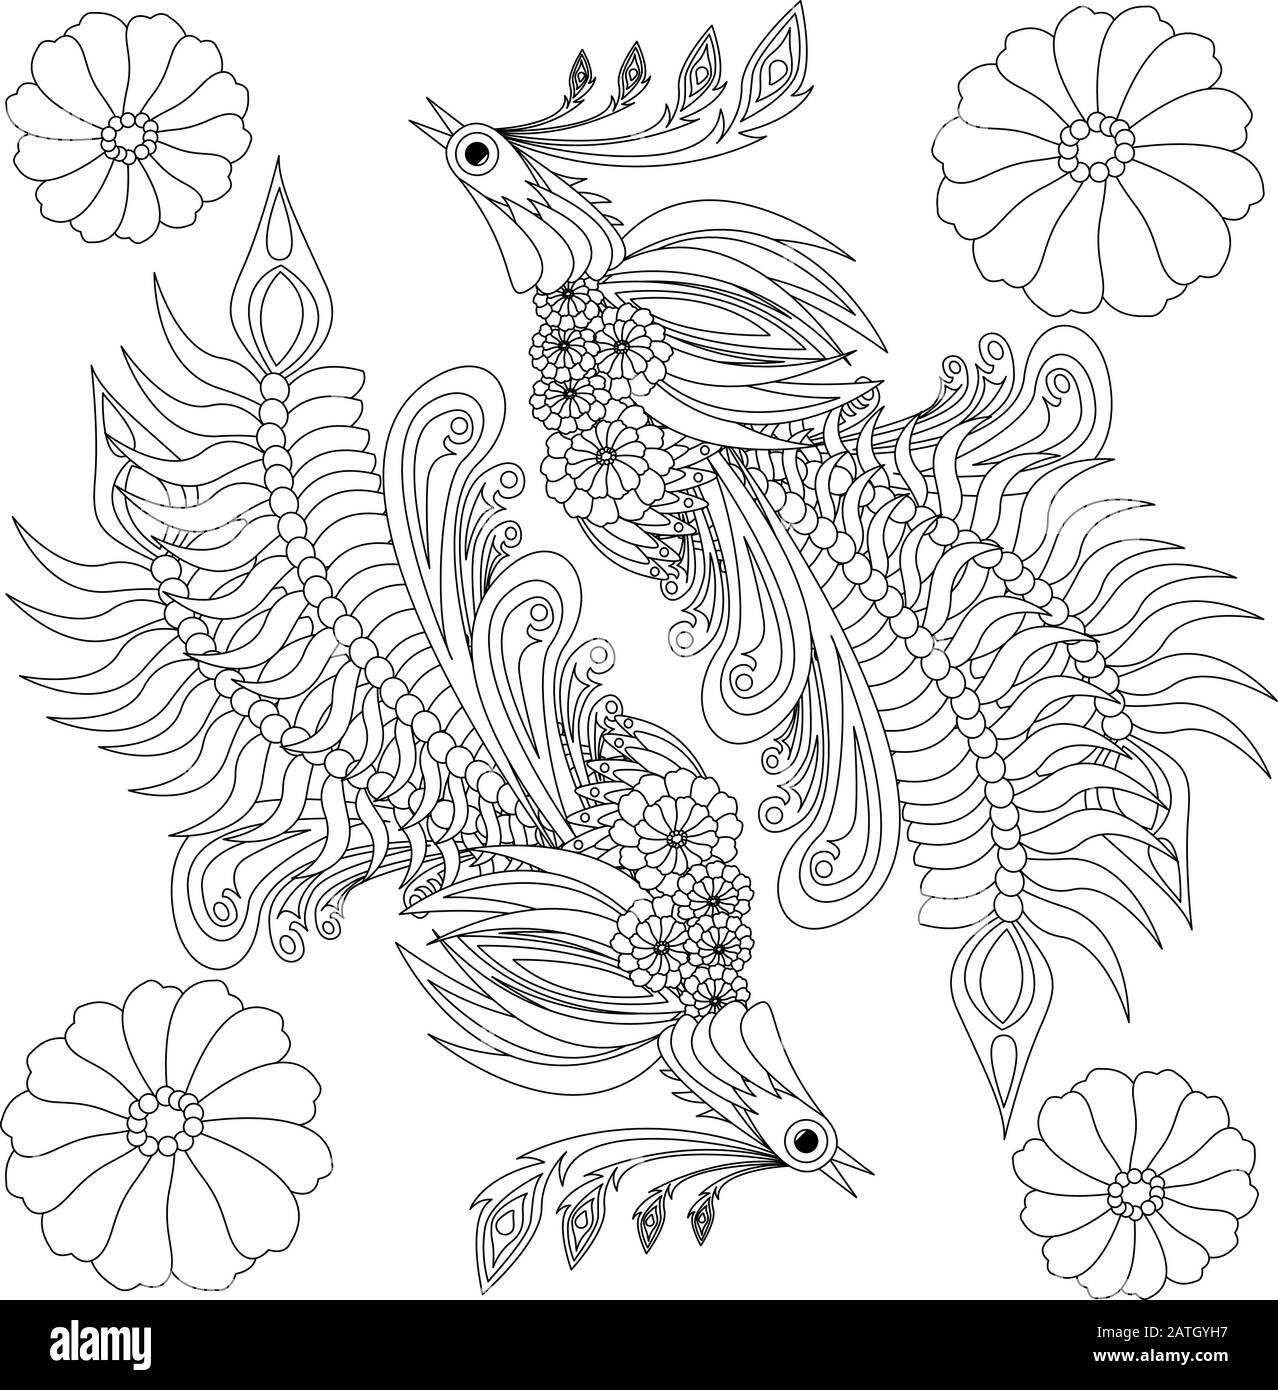 Floral Ukrainian Vector Image Flower In The Style Of Petrykivka Painting Isolated Element For Design Coloring Page Stock Vector Image Art Alamy